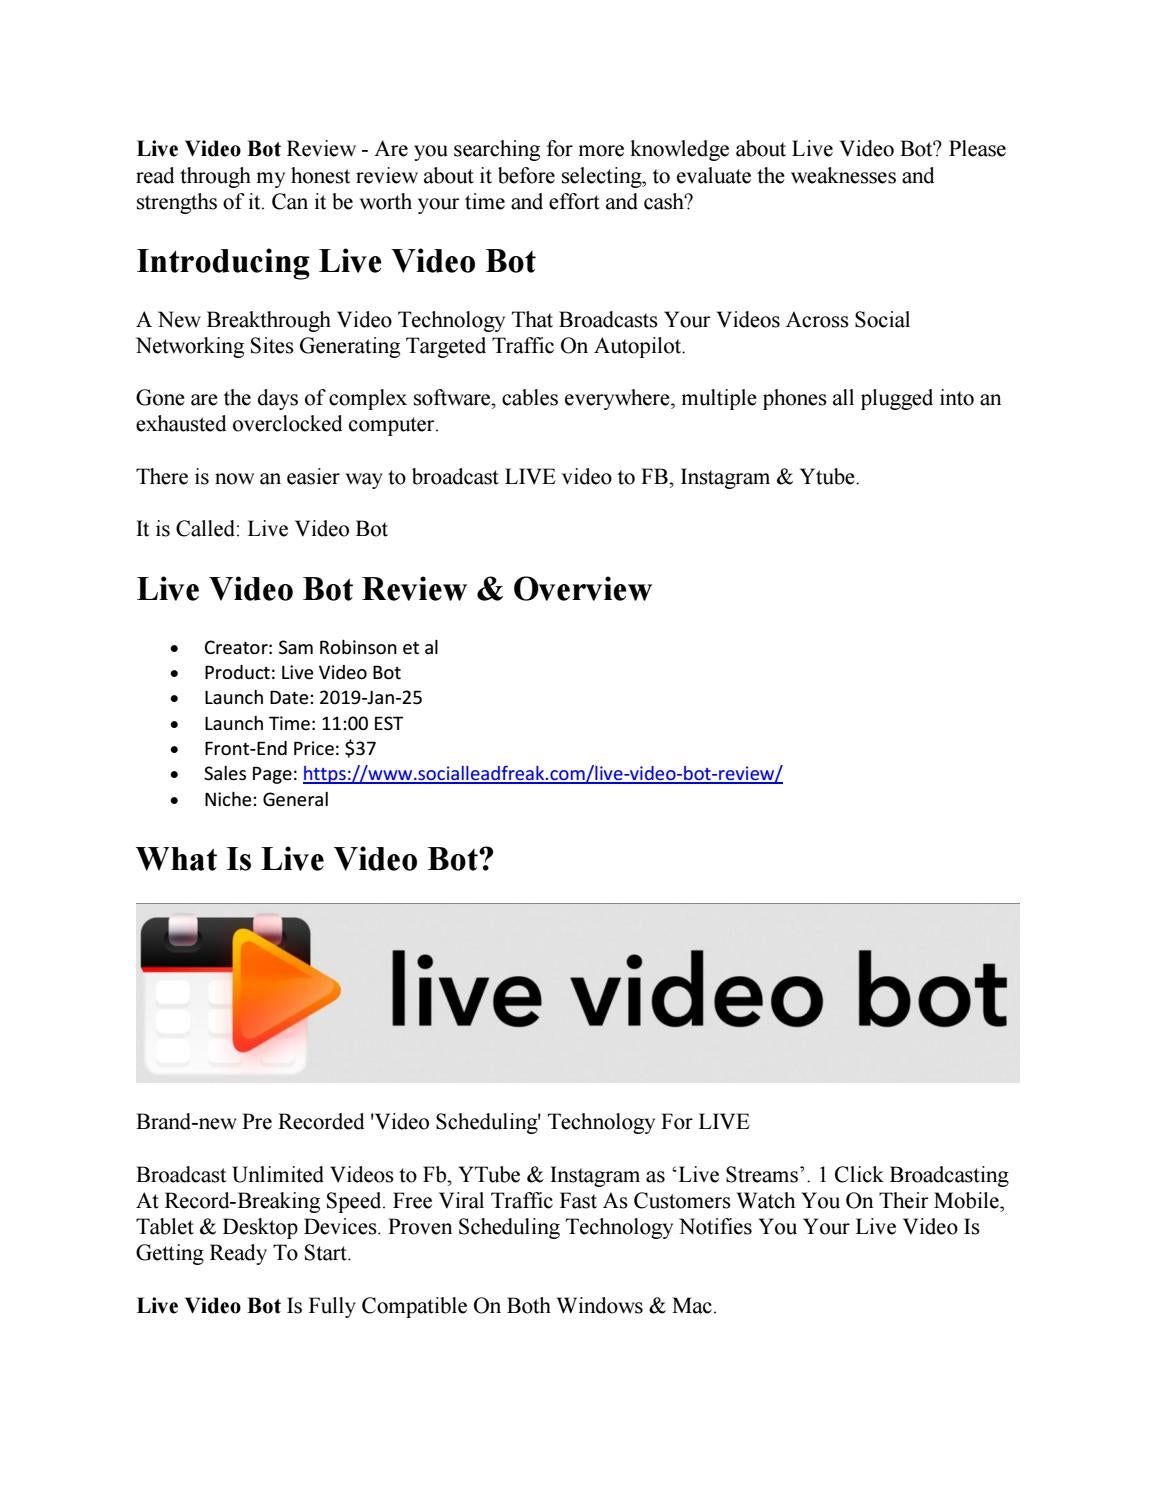 Live Video Bot Review Does It Work by richardlarue - issuu